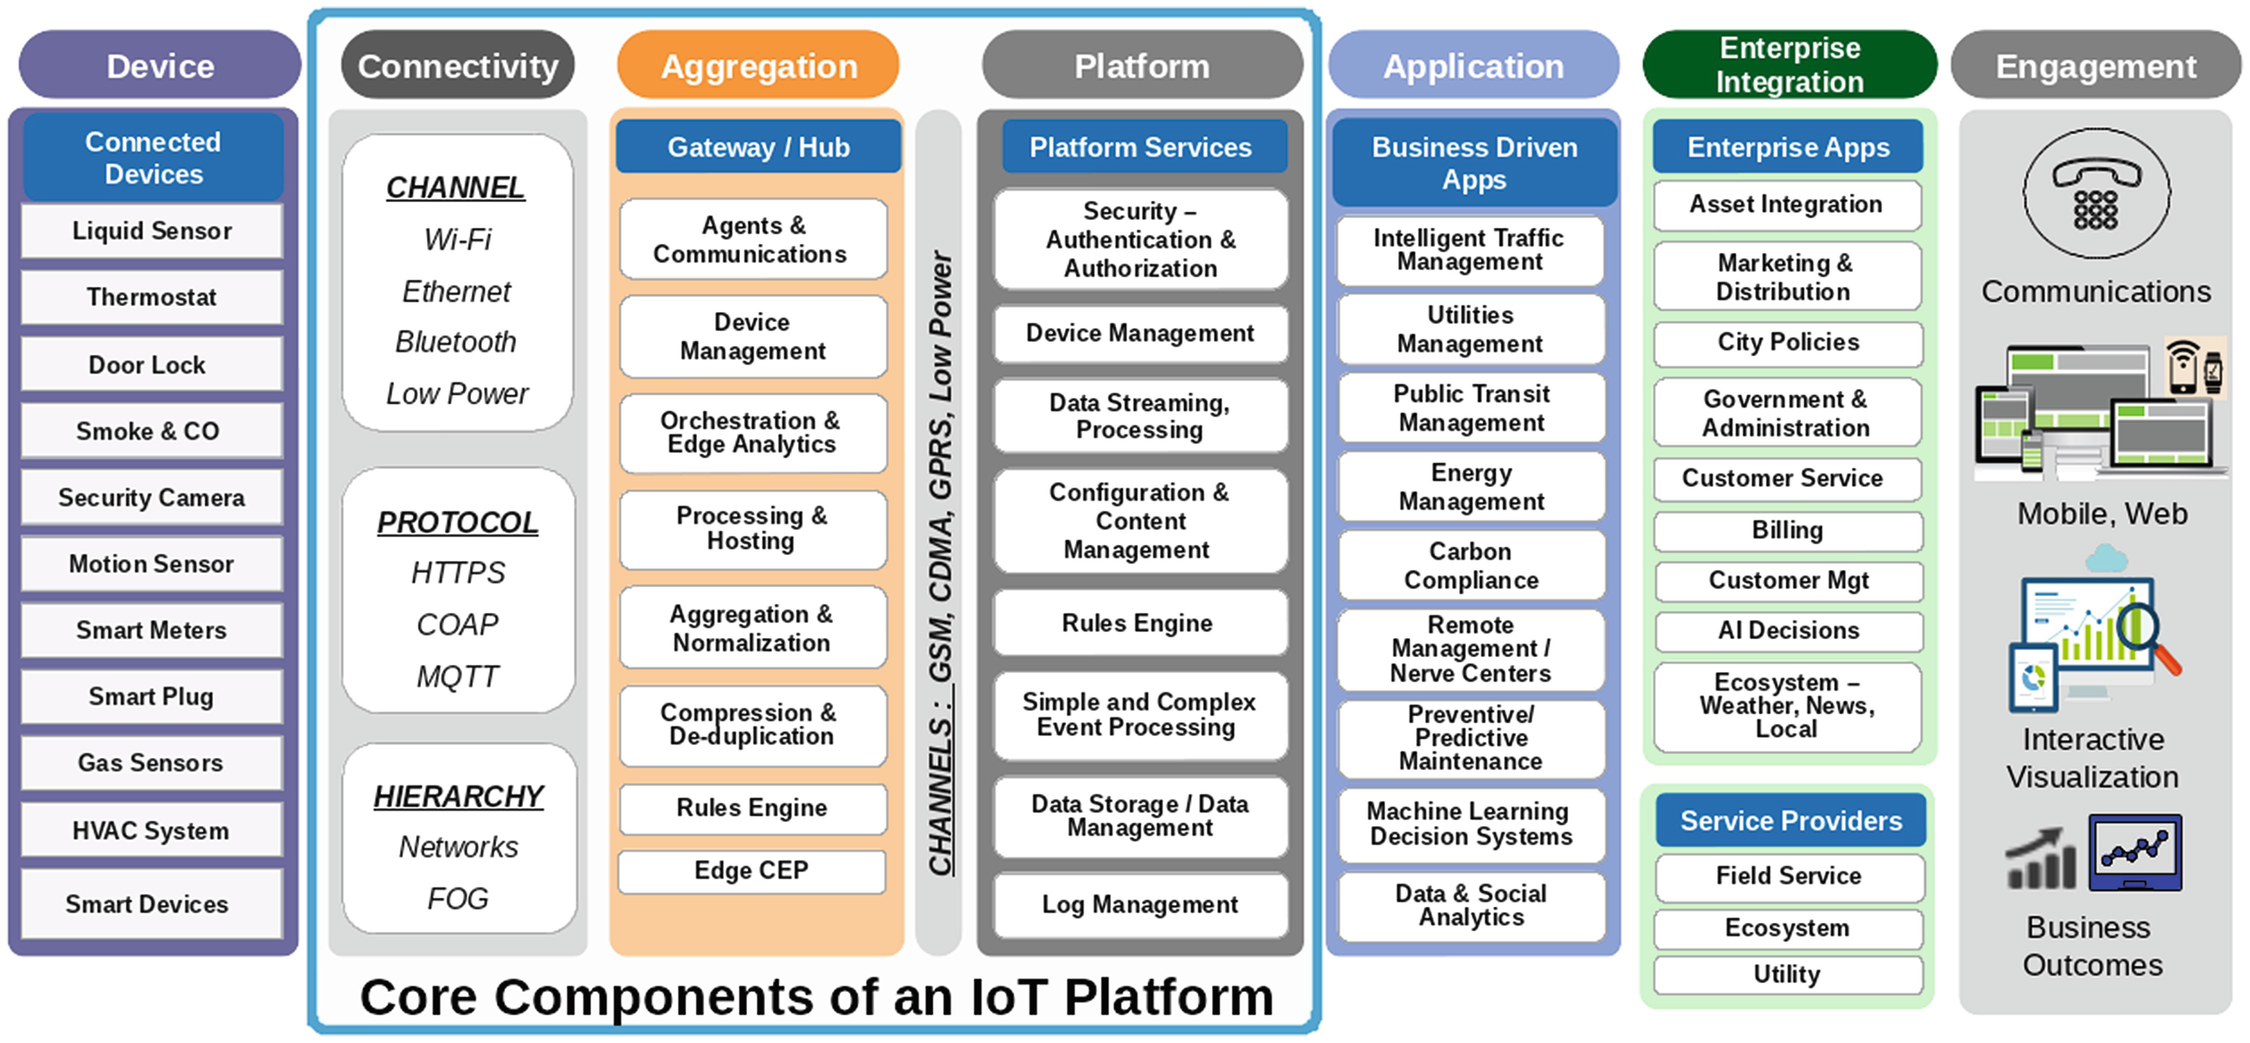 Architecting IOT for Smart Cities | SpringerLink